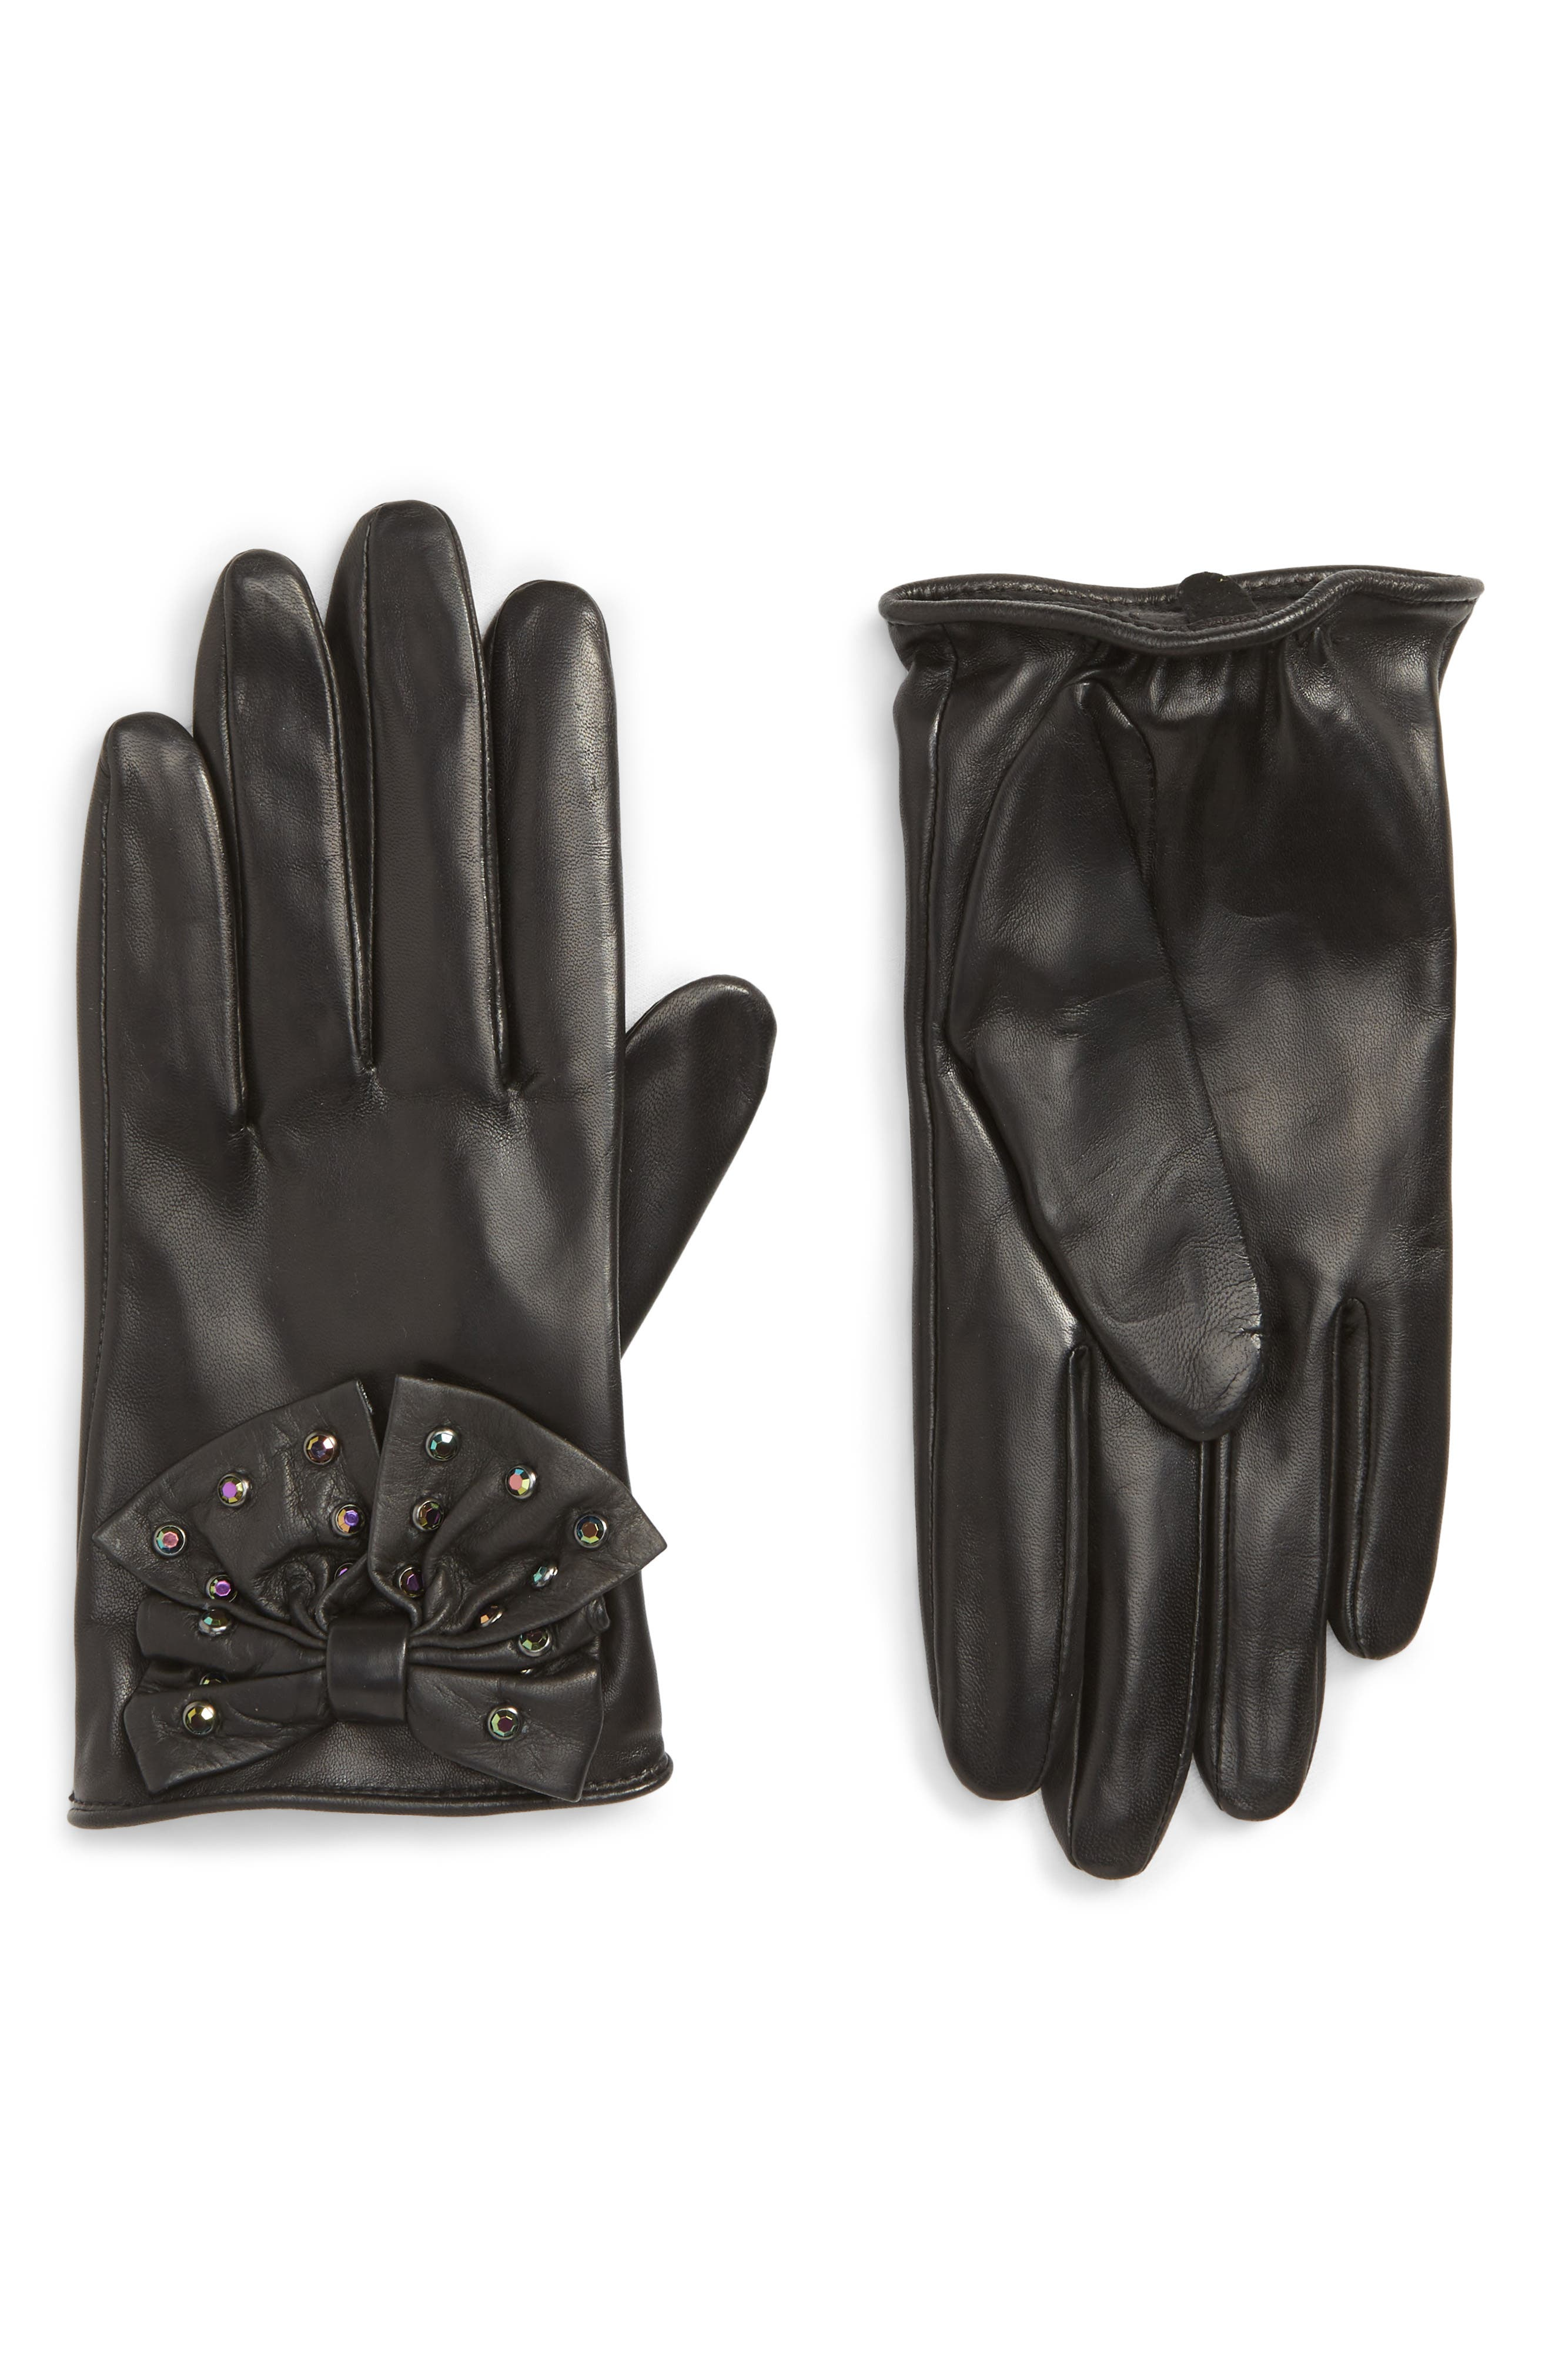 NORDSTROM,                             Bow Short Leather Gloves,                             Main thumbnail 1, color,                             001